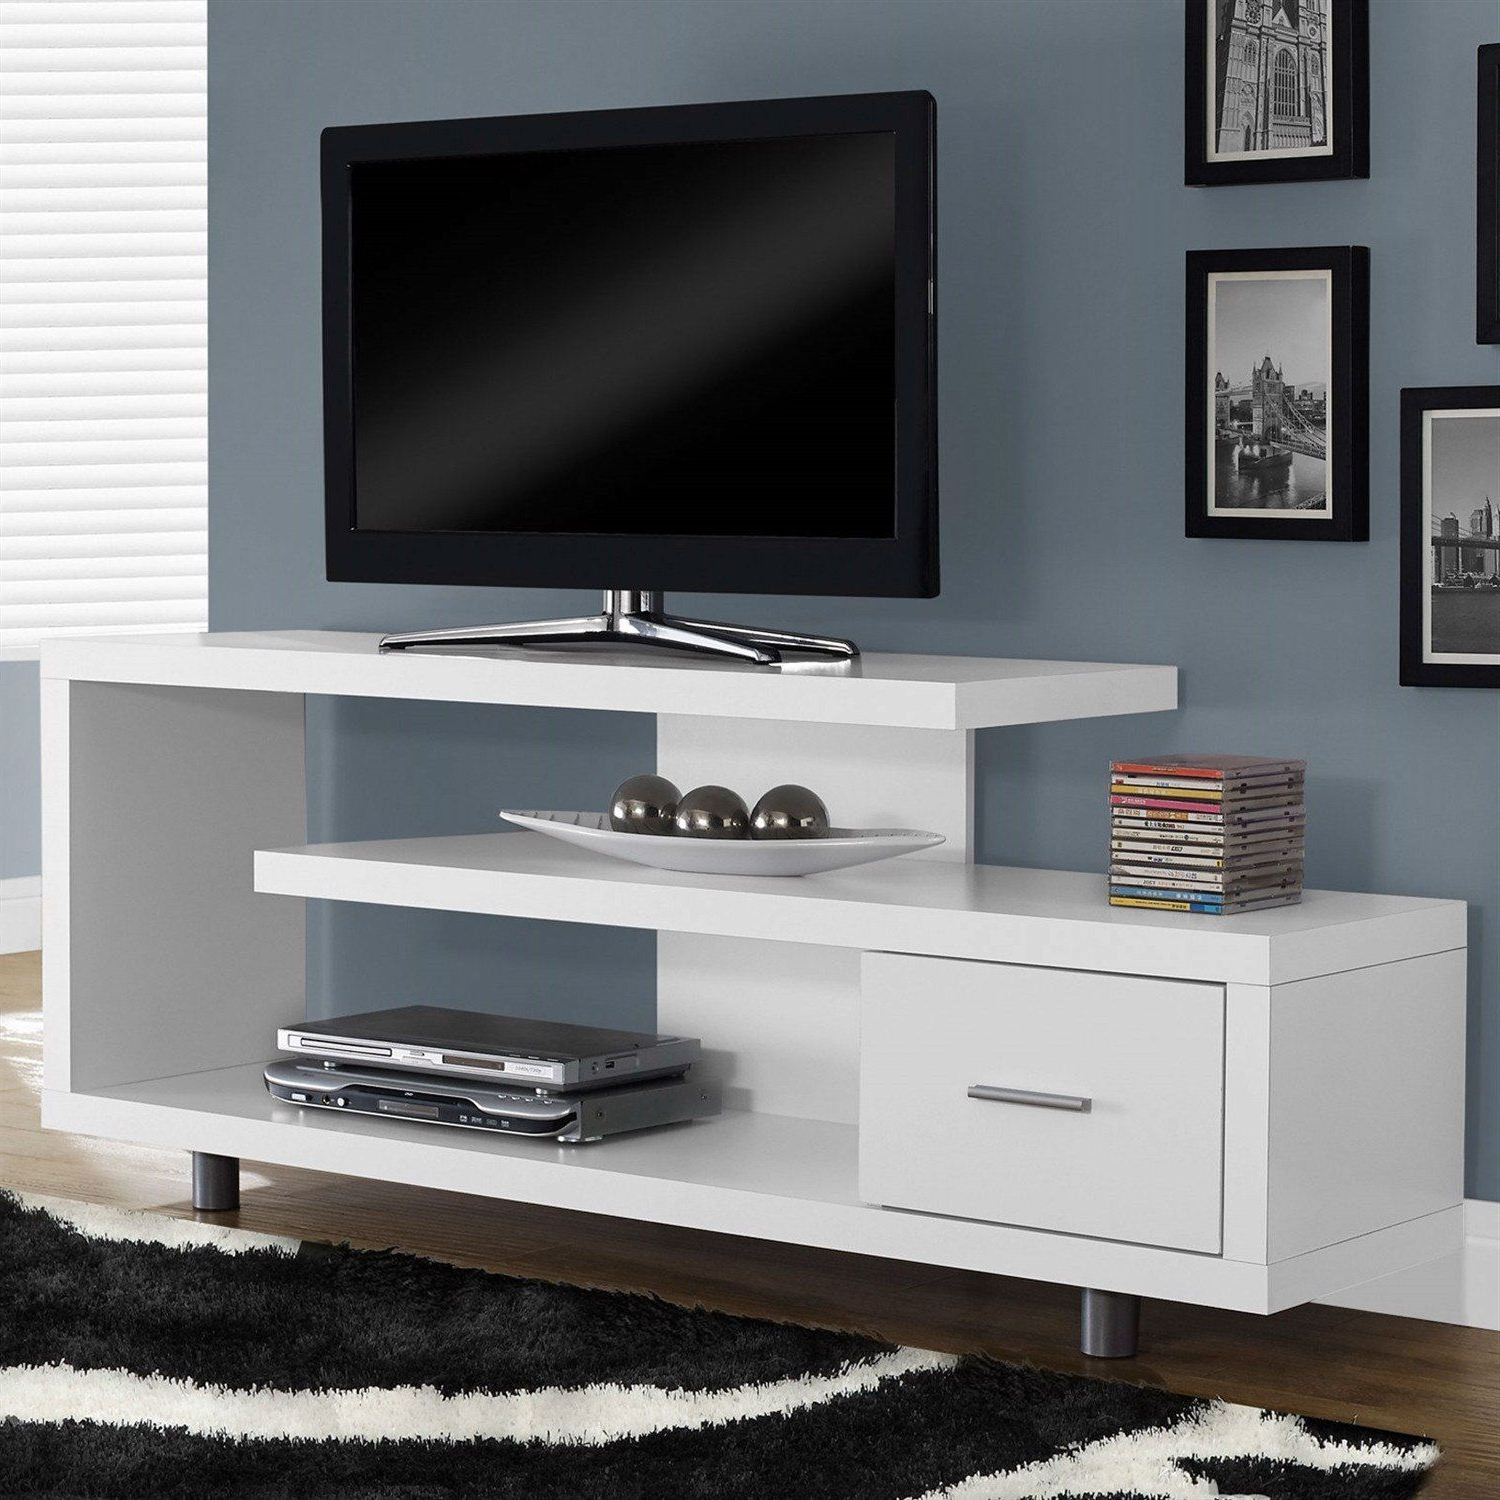 Home Pertaining To Modern Tv Cabinets For Flat Screens (Gallery 1 of 20)